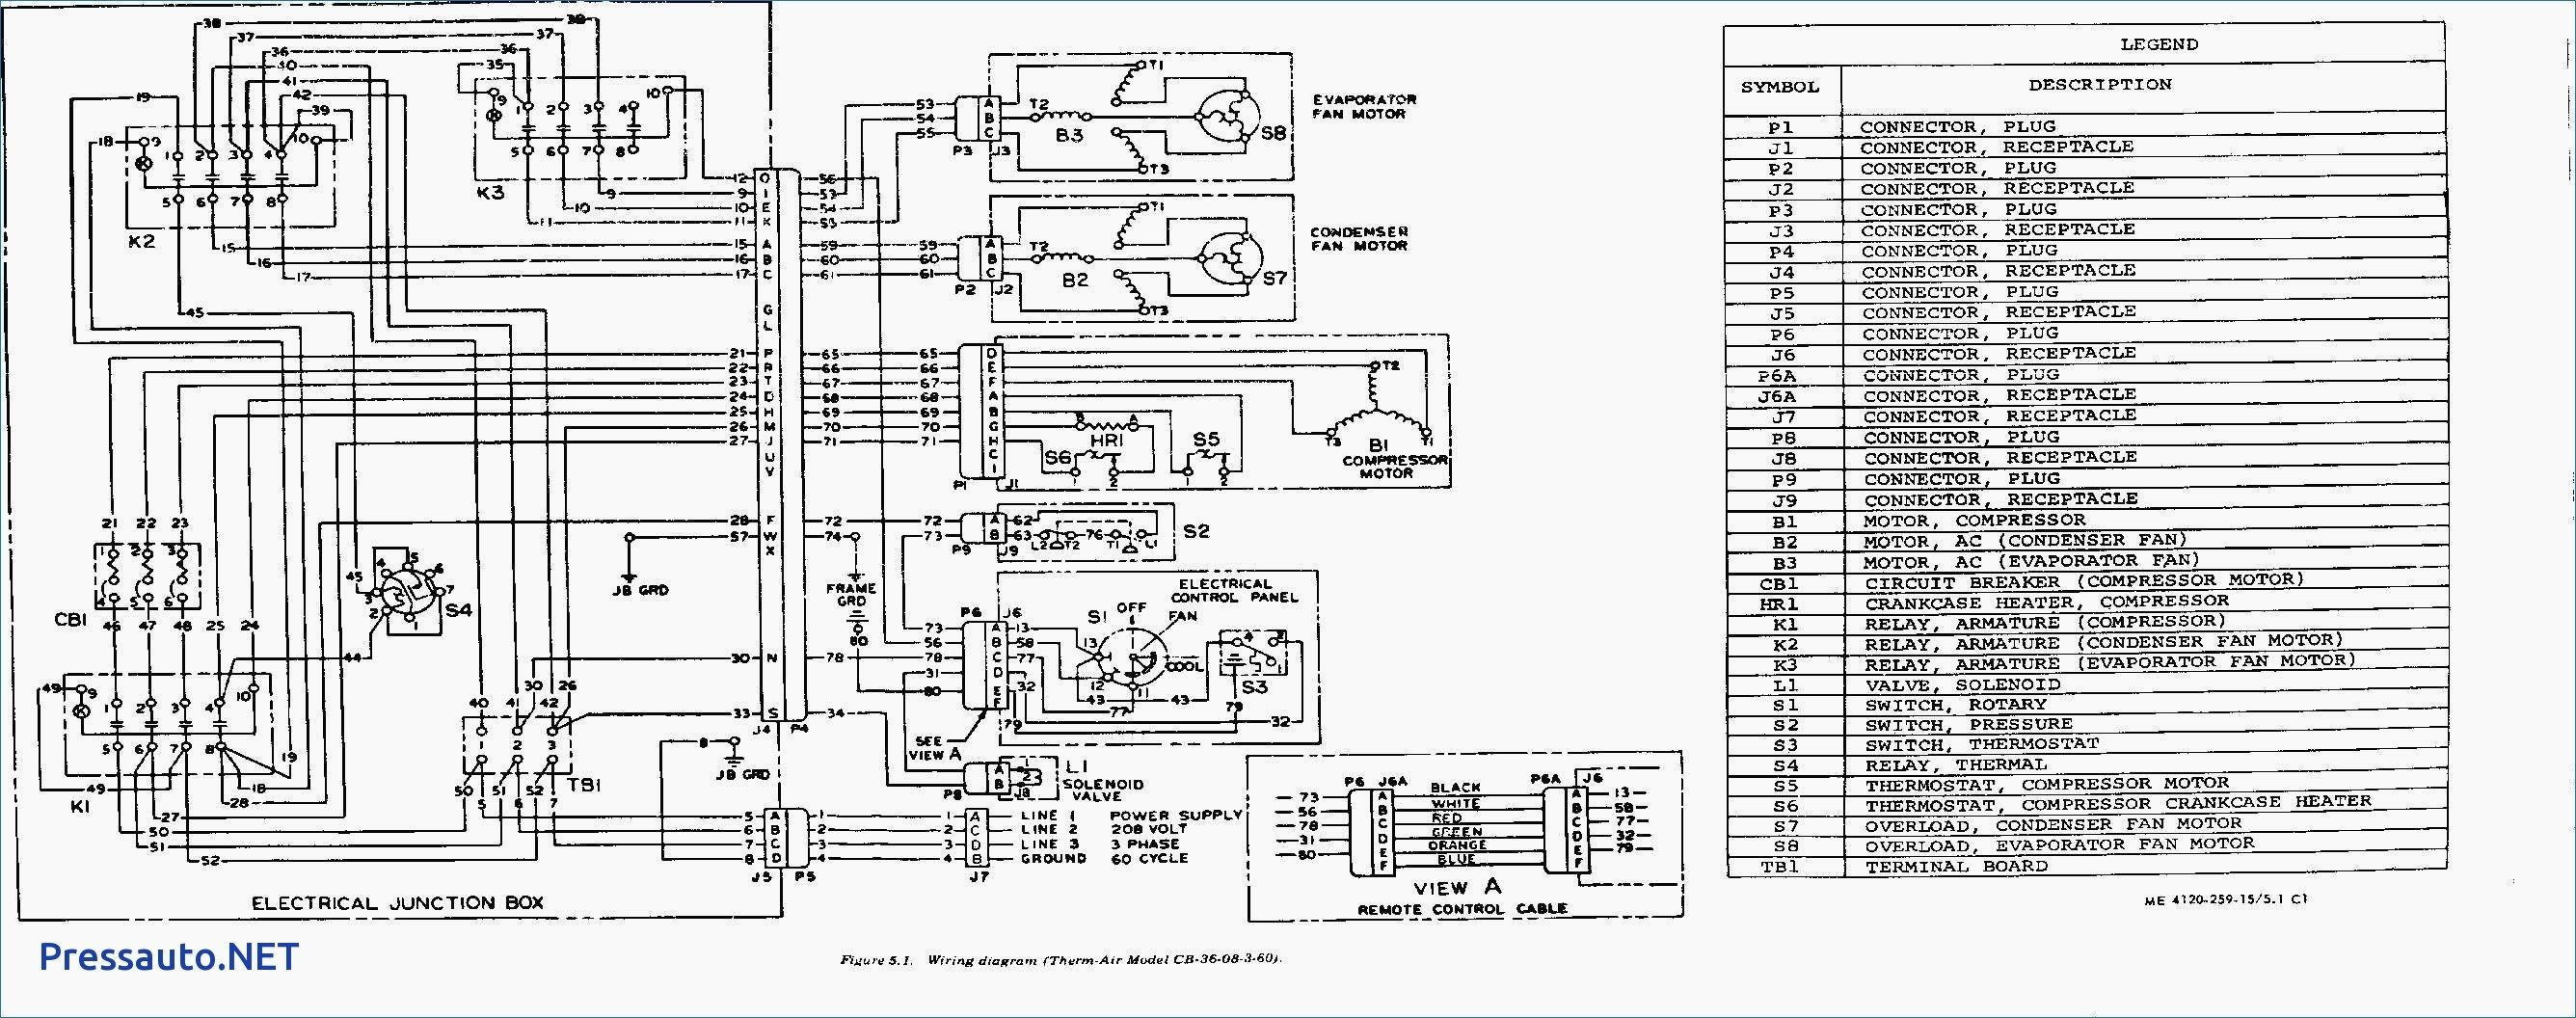 xl14i trane thermostat wiring diagram wiring diagram img